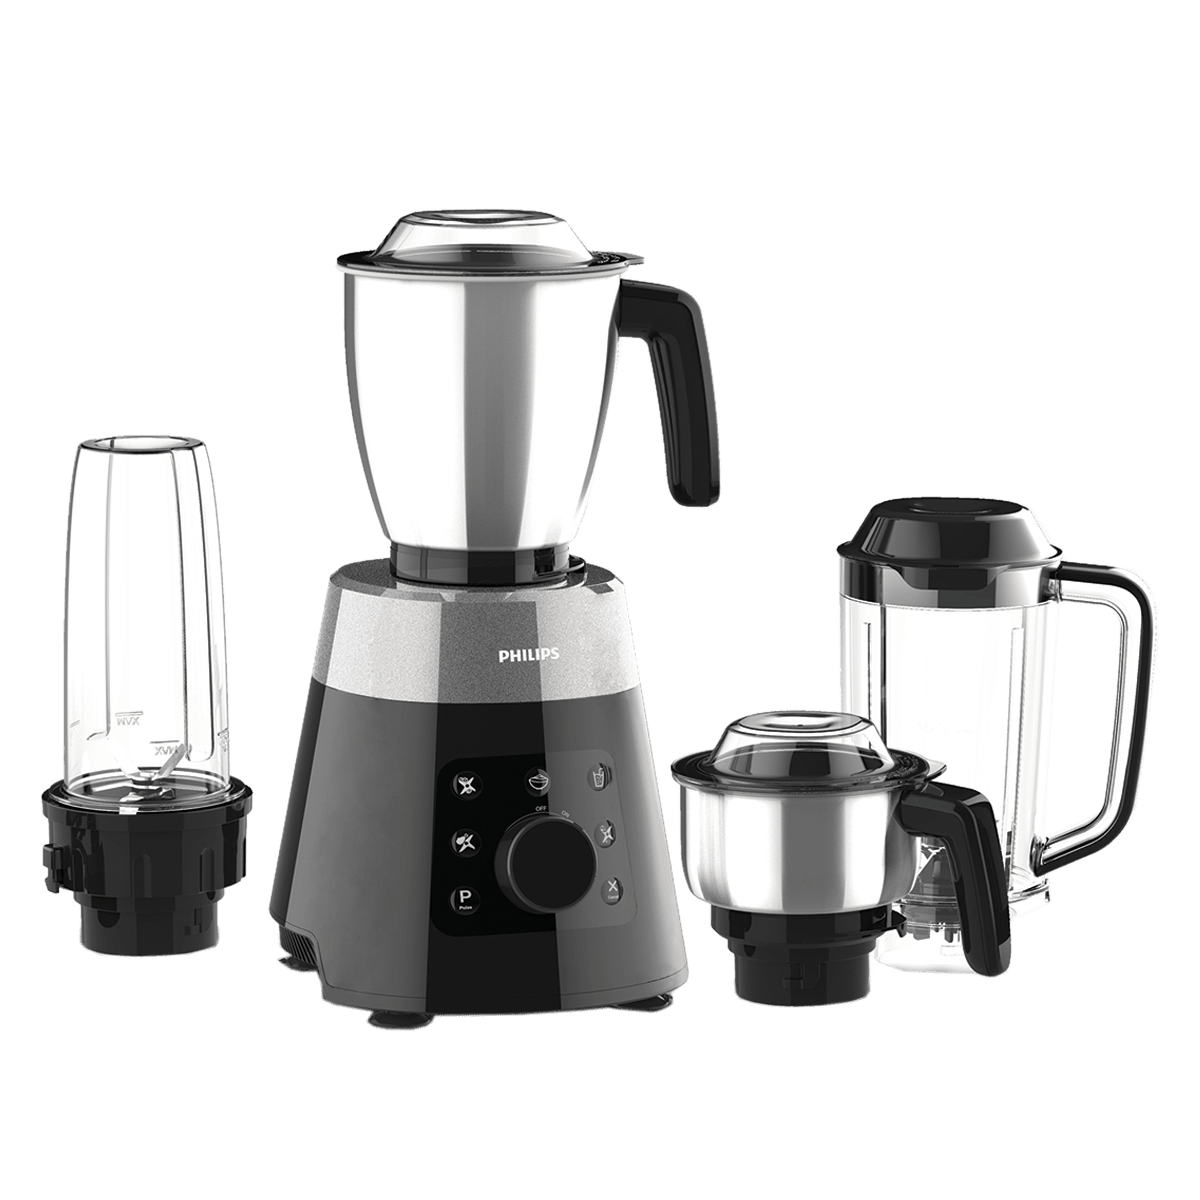 Philips Avance Collection 750 Watts 4 Jars Mixer Grinder (3-Step Blade Technology, HL7777/00, Metallic Silver/Bold Black)